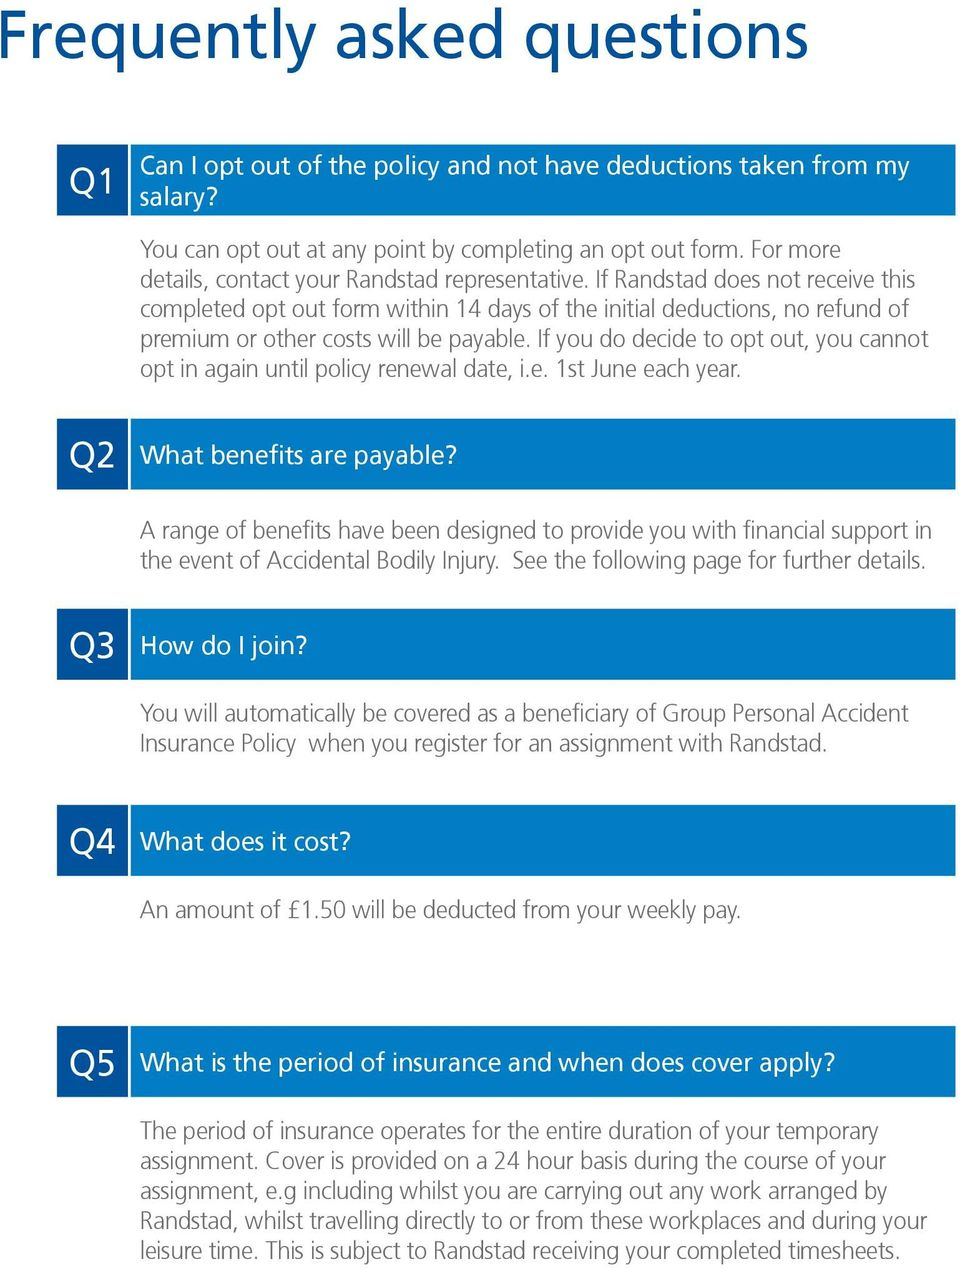 If Randstad does not receive this completed opt out form within 14 days of the initial deductions, no refund of premium or other costs will be payable.